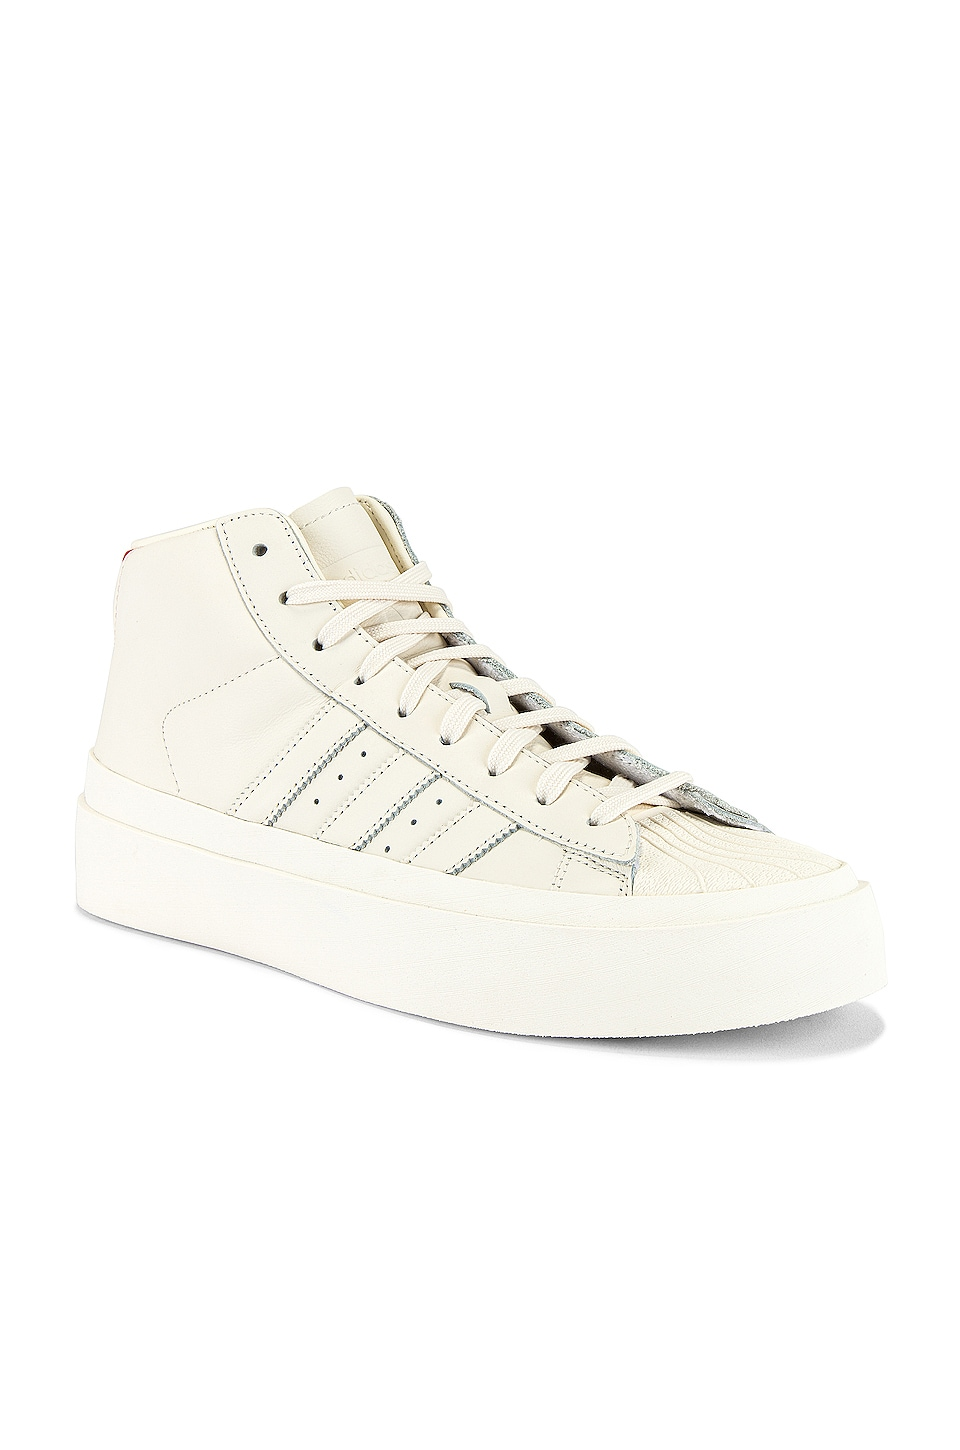 adidas x 424 Pro Model 80S in Chalk White & Chalk White & Chalk White